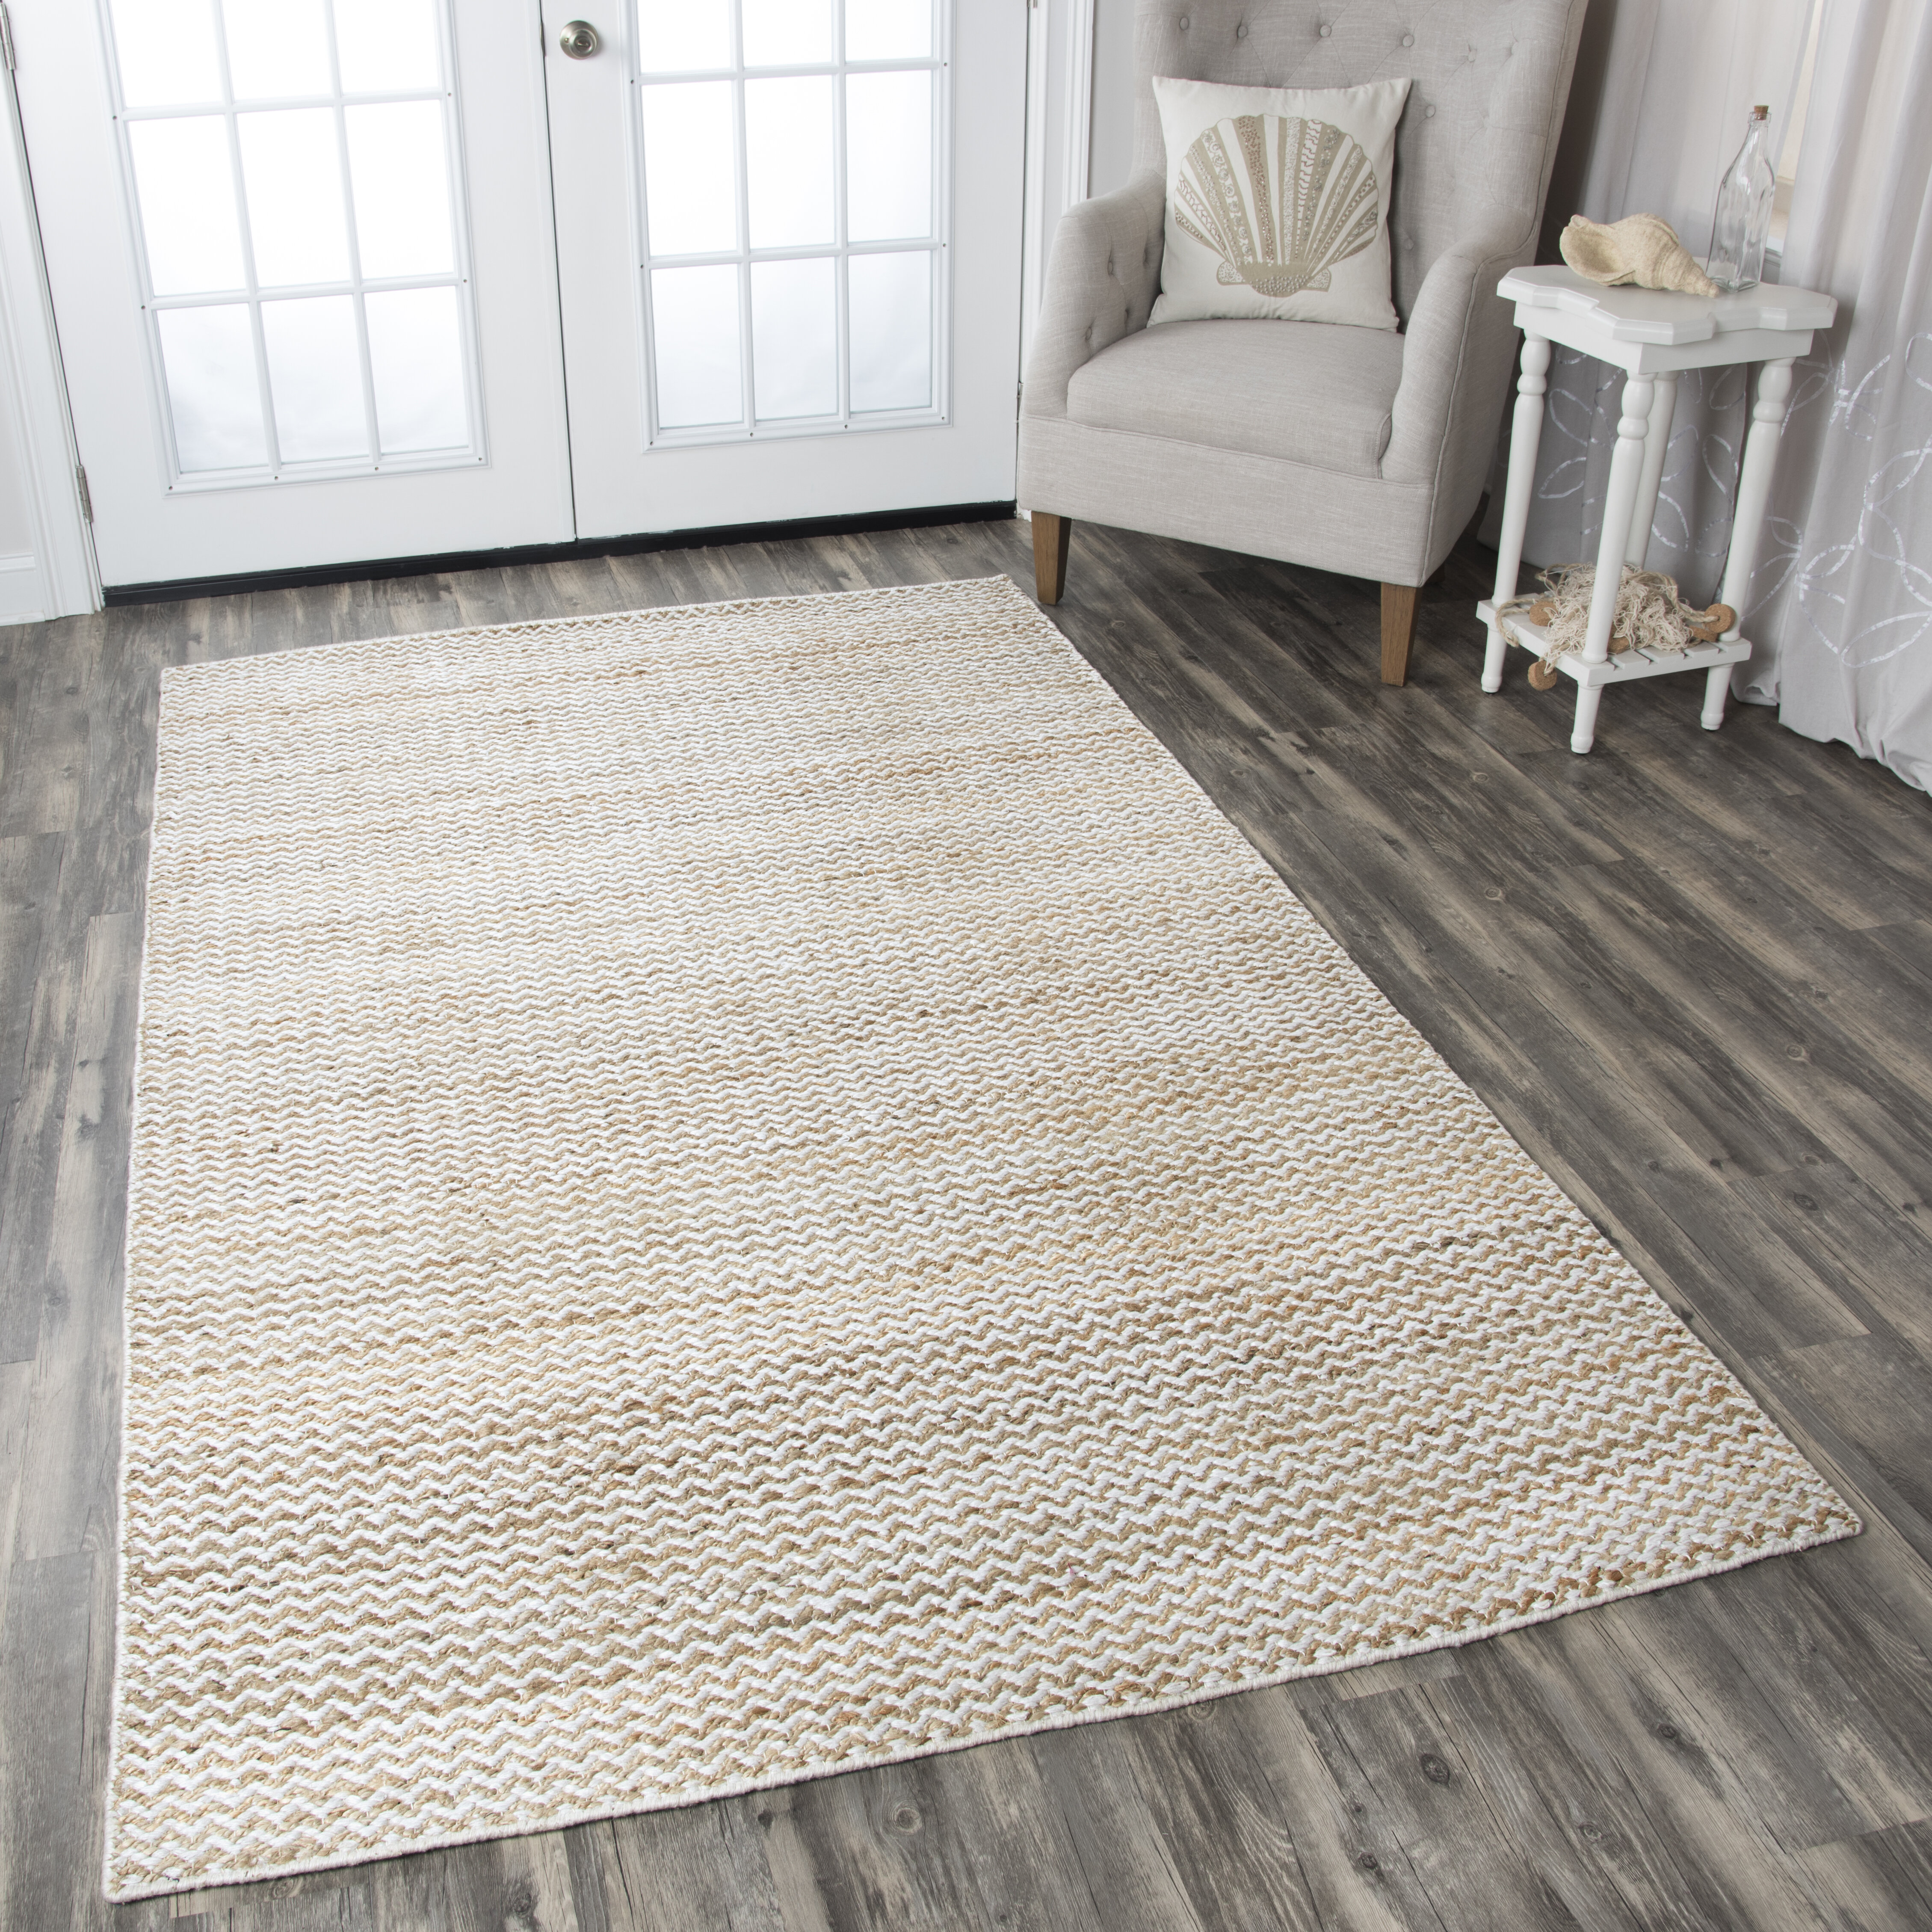 rug area rugs and joss turquoise mustard seville gallery in black images marvellous handtufted main of reviews htm white